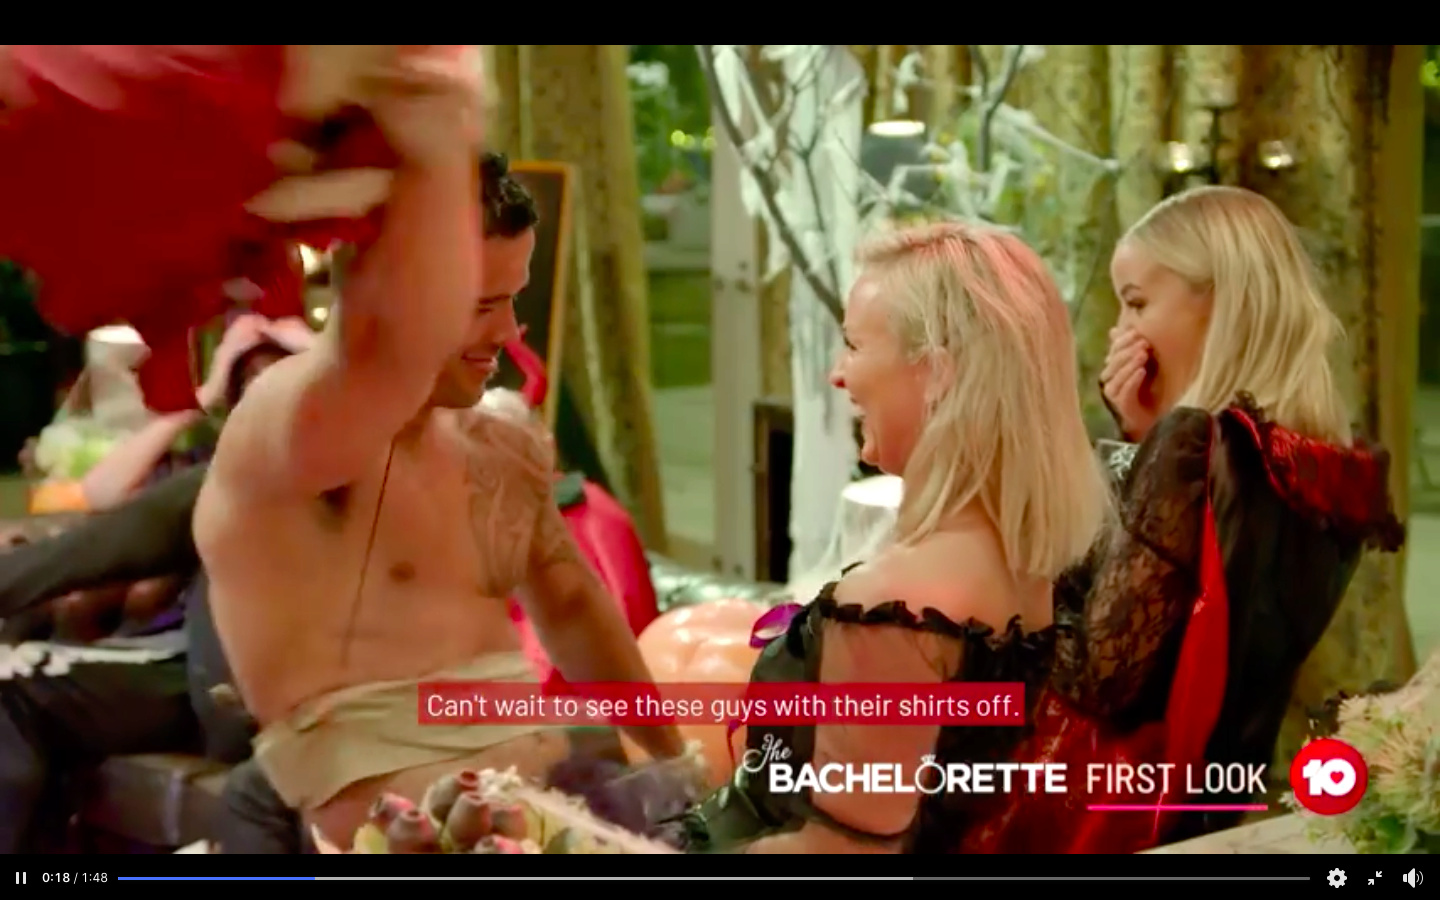 Bachelorette Australia - Season 6 - Elly and Becky Miles - Screencaps - Discussion - *Sleuthing Spoilers*  - Page 5 Screen62